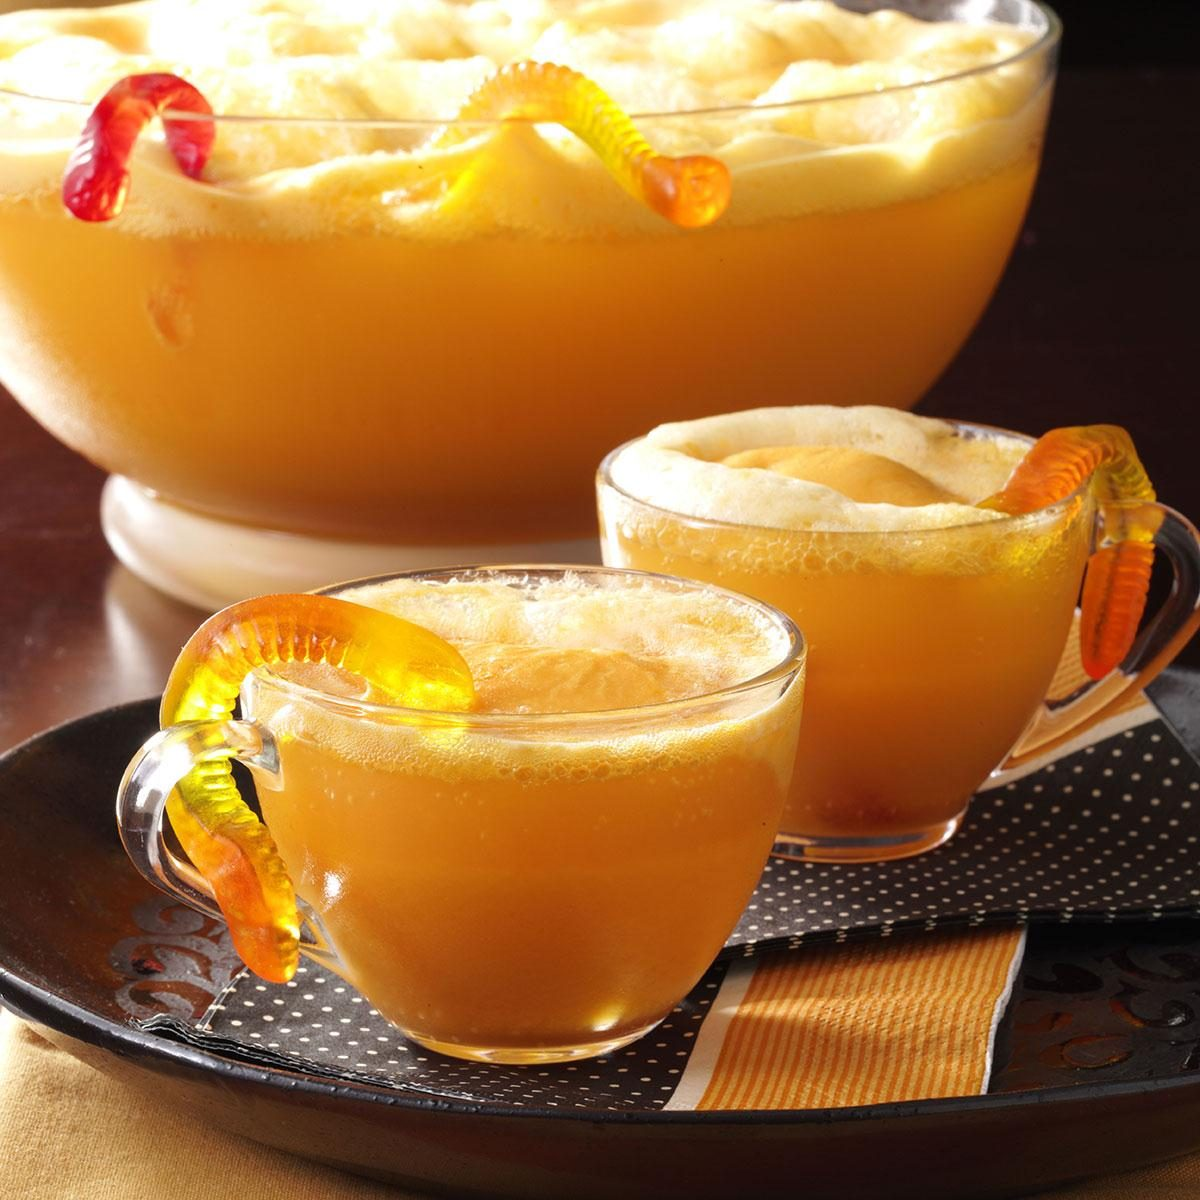 wormy orange punch recipe taste of home - Spiked Halloween Punch Recipes